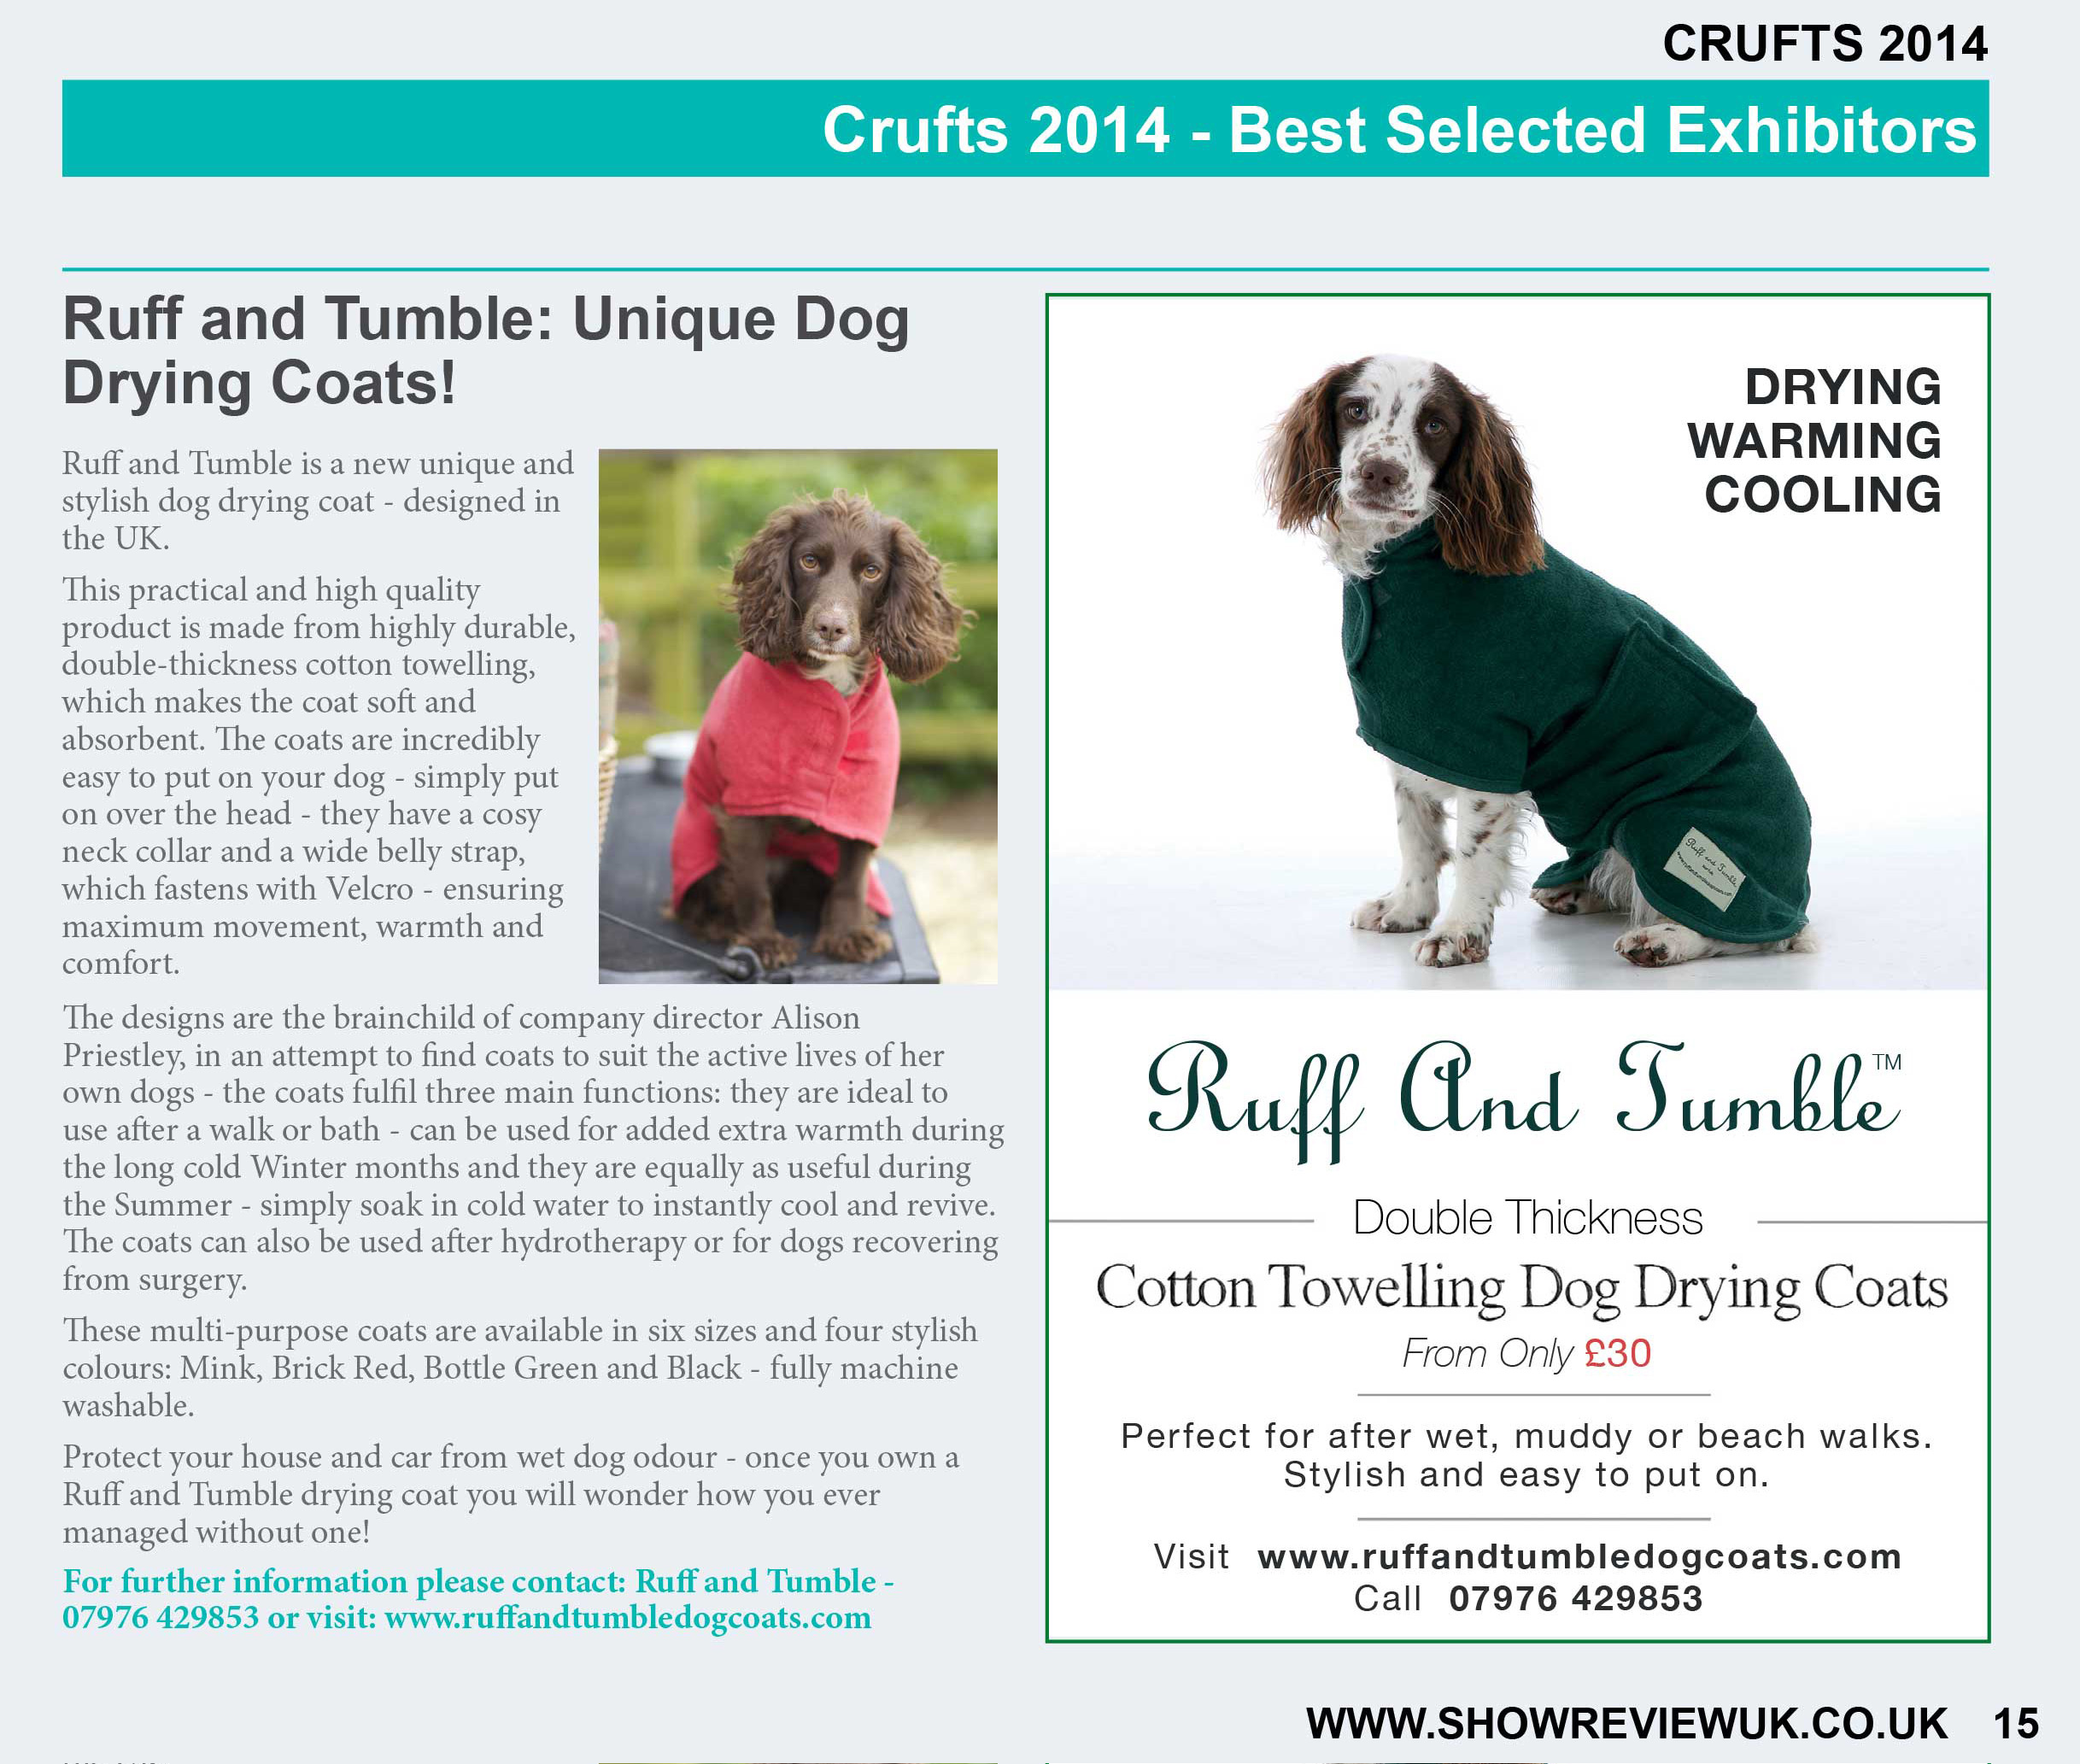 Check us out! Best in show! :)